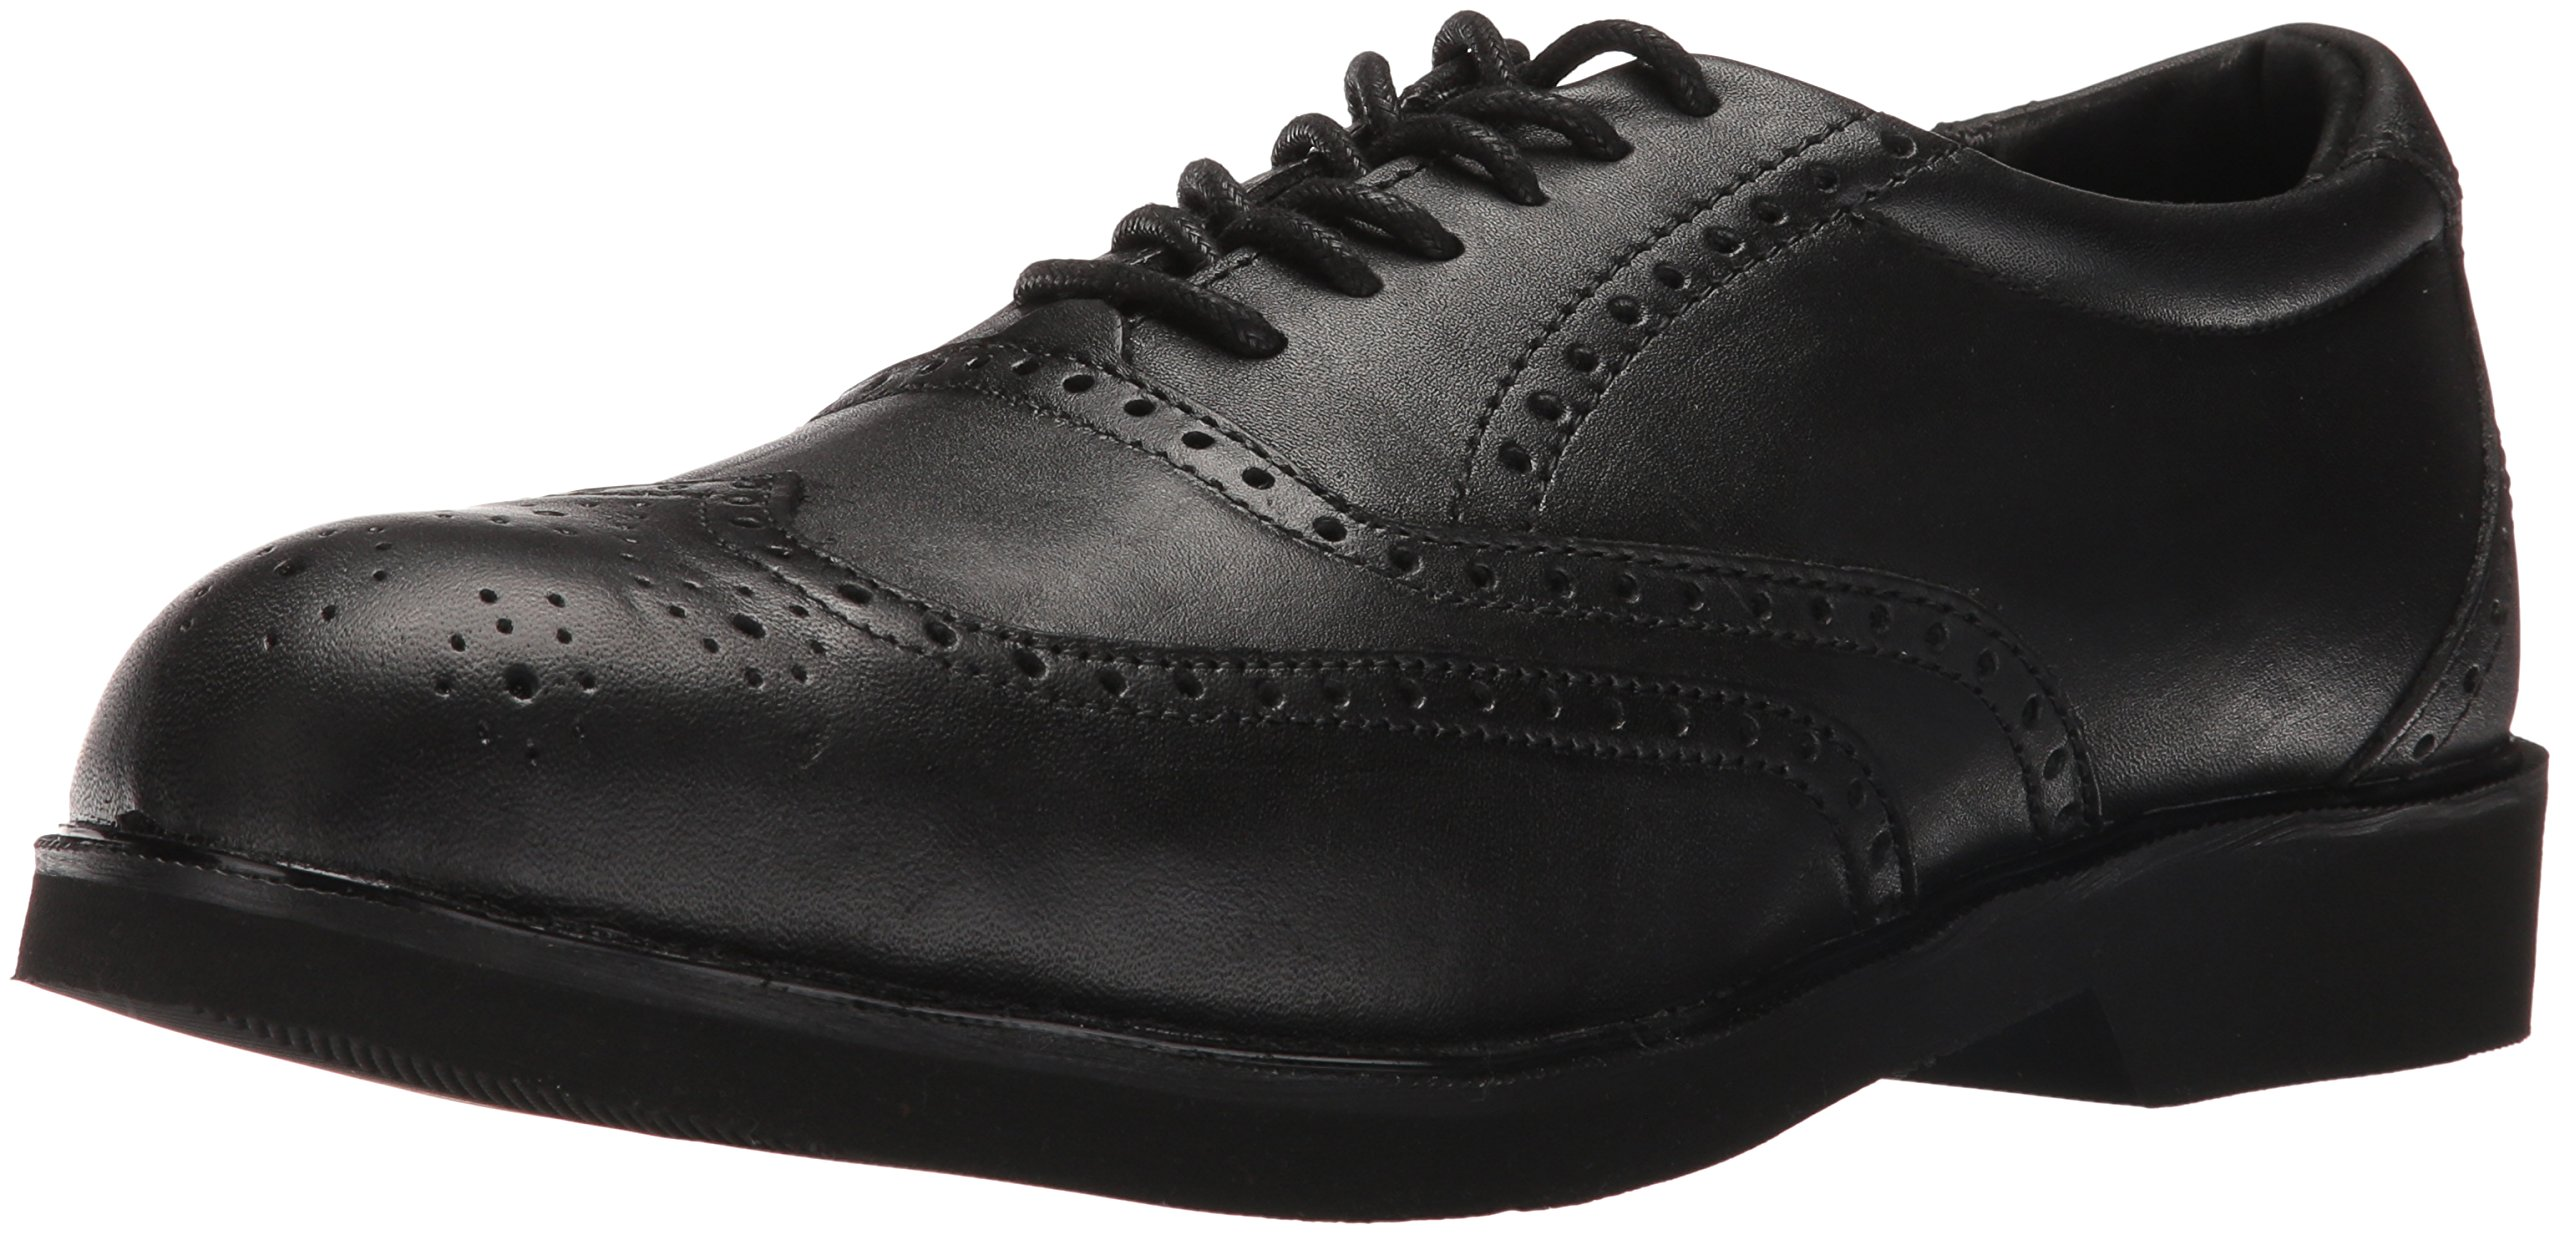 Rockport Work Men's RK6741 Work Shoe,Black,11 W US